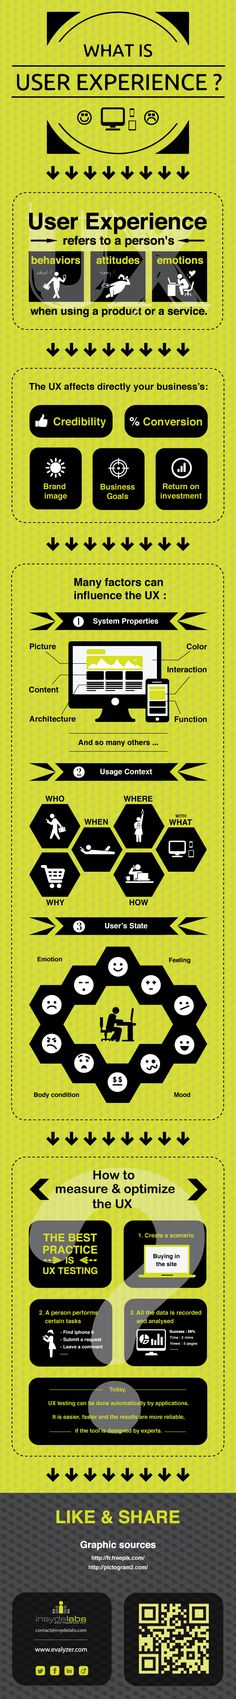 What is User Experience (UX) ? #UX #webdesign